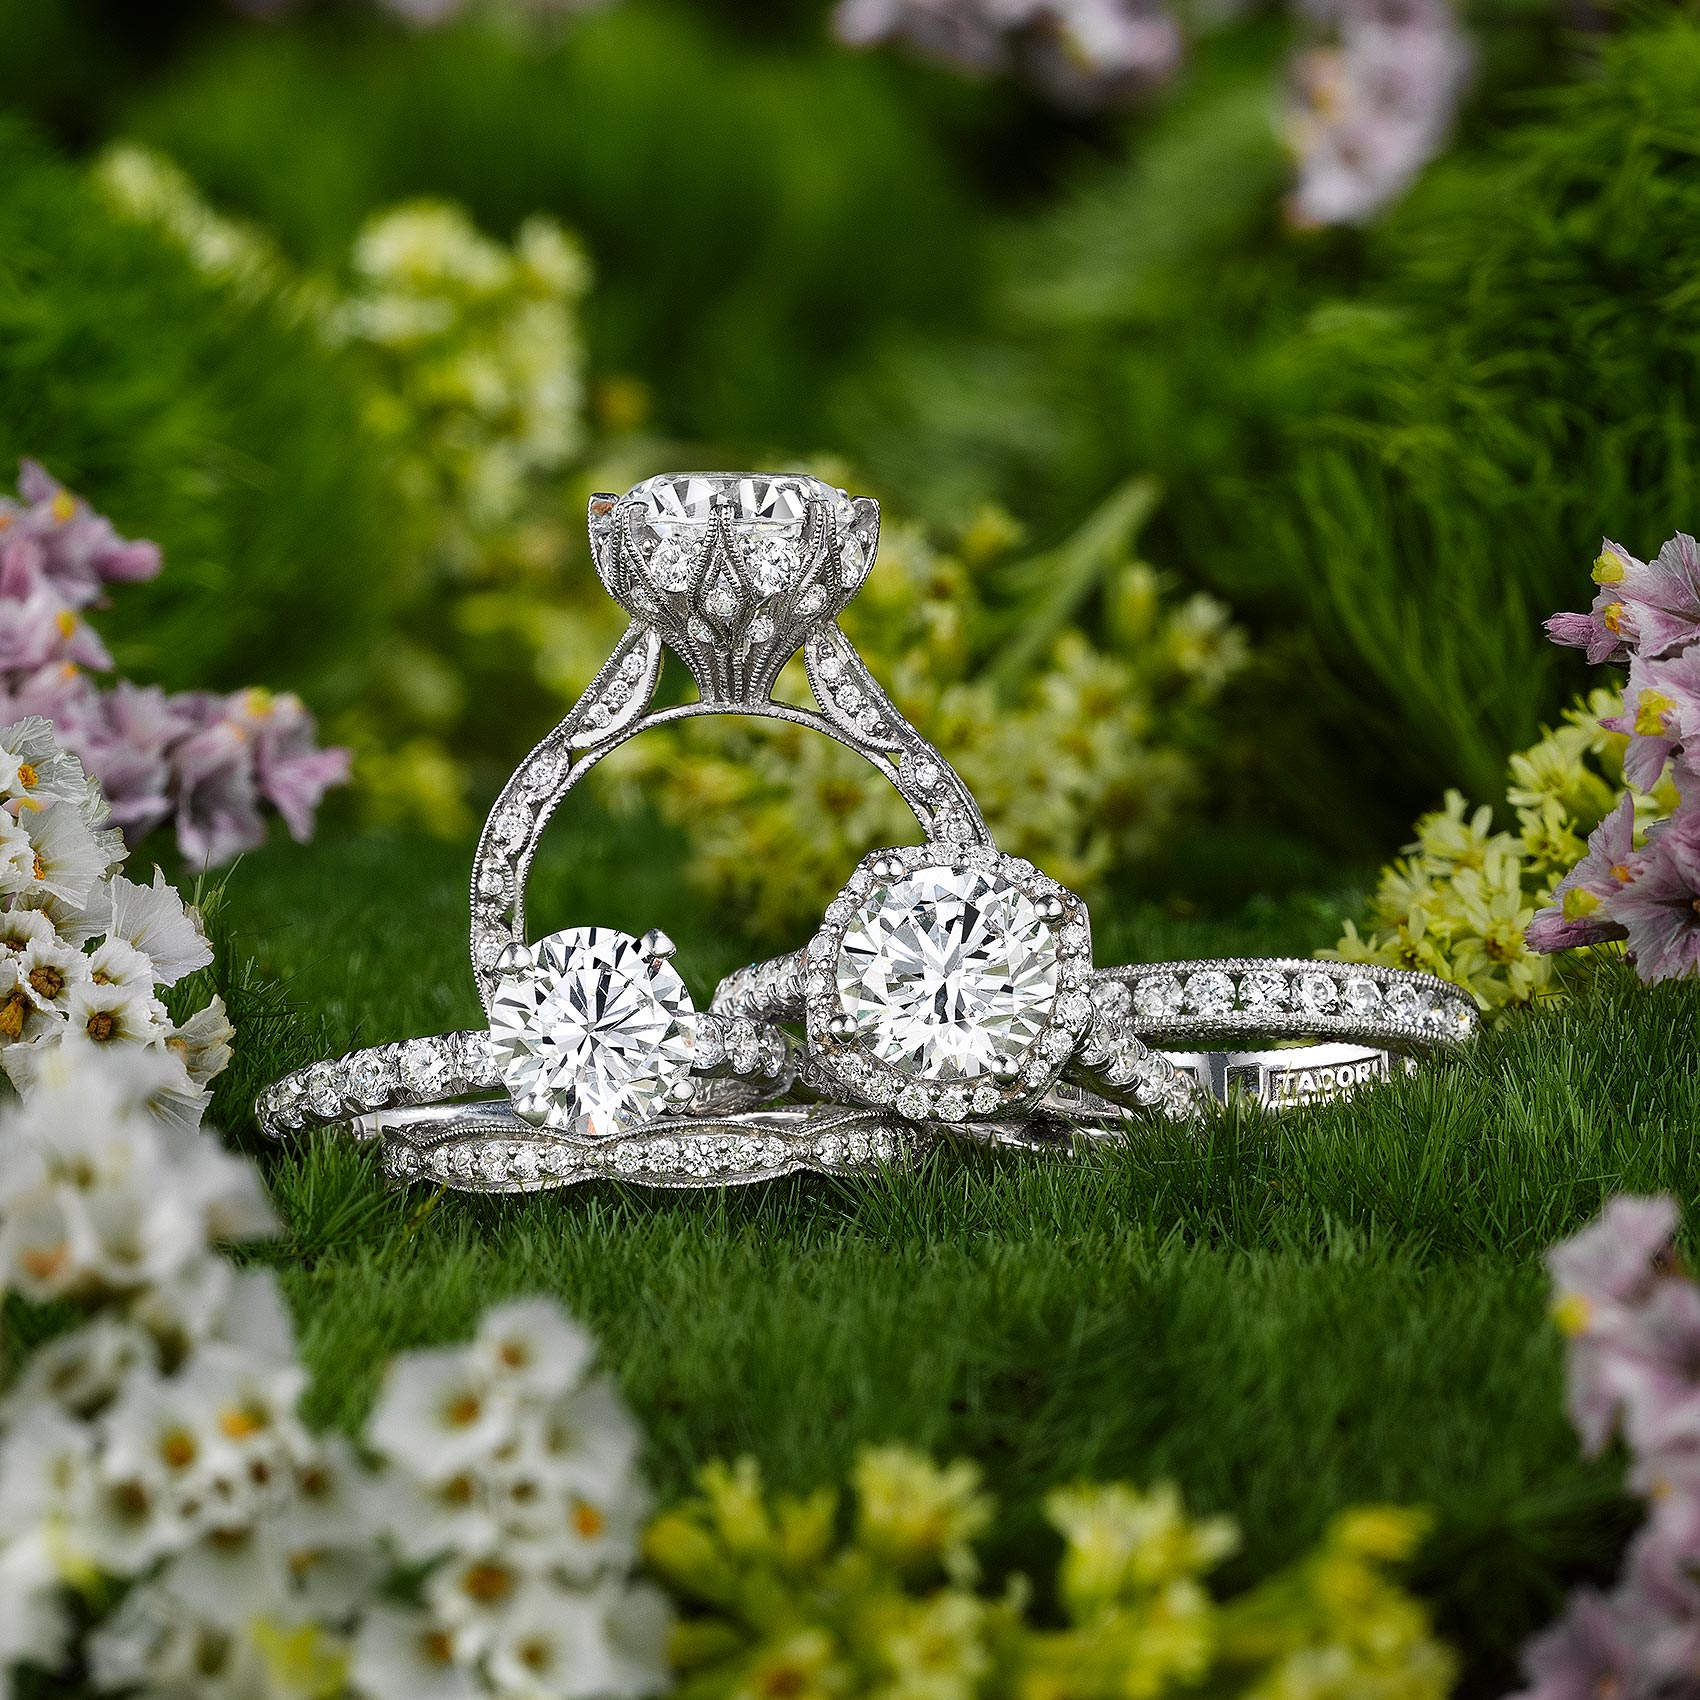 Tacori Rings with Flowers